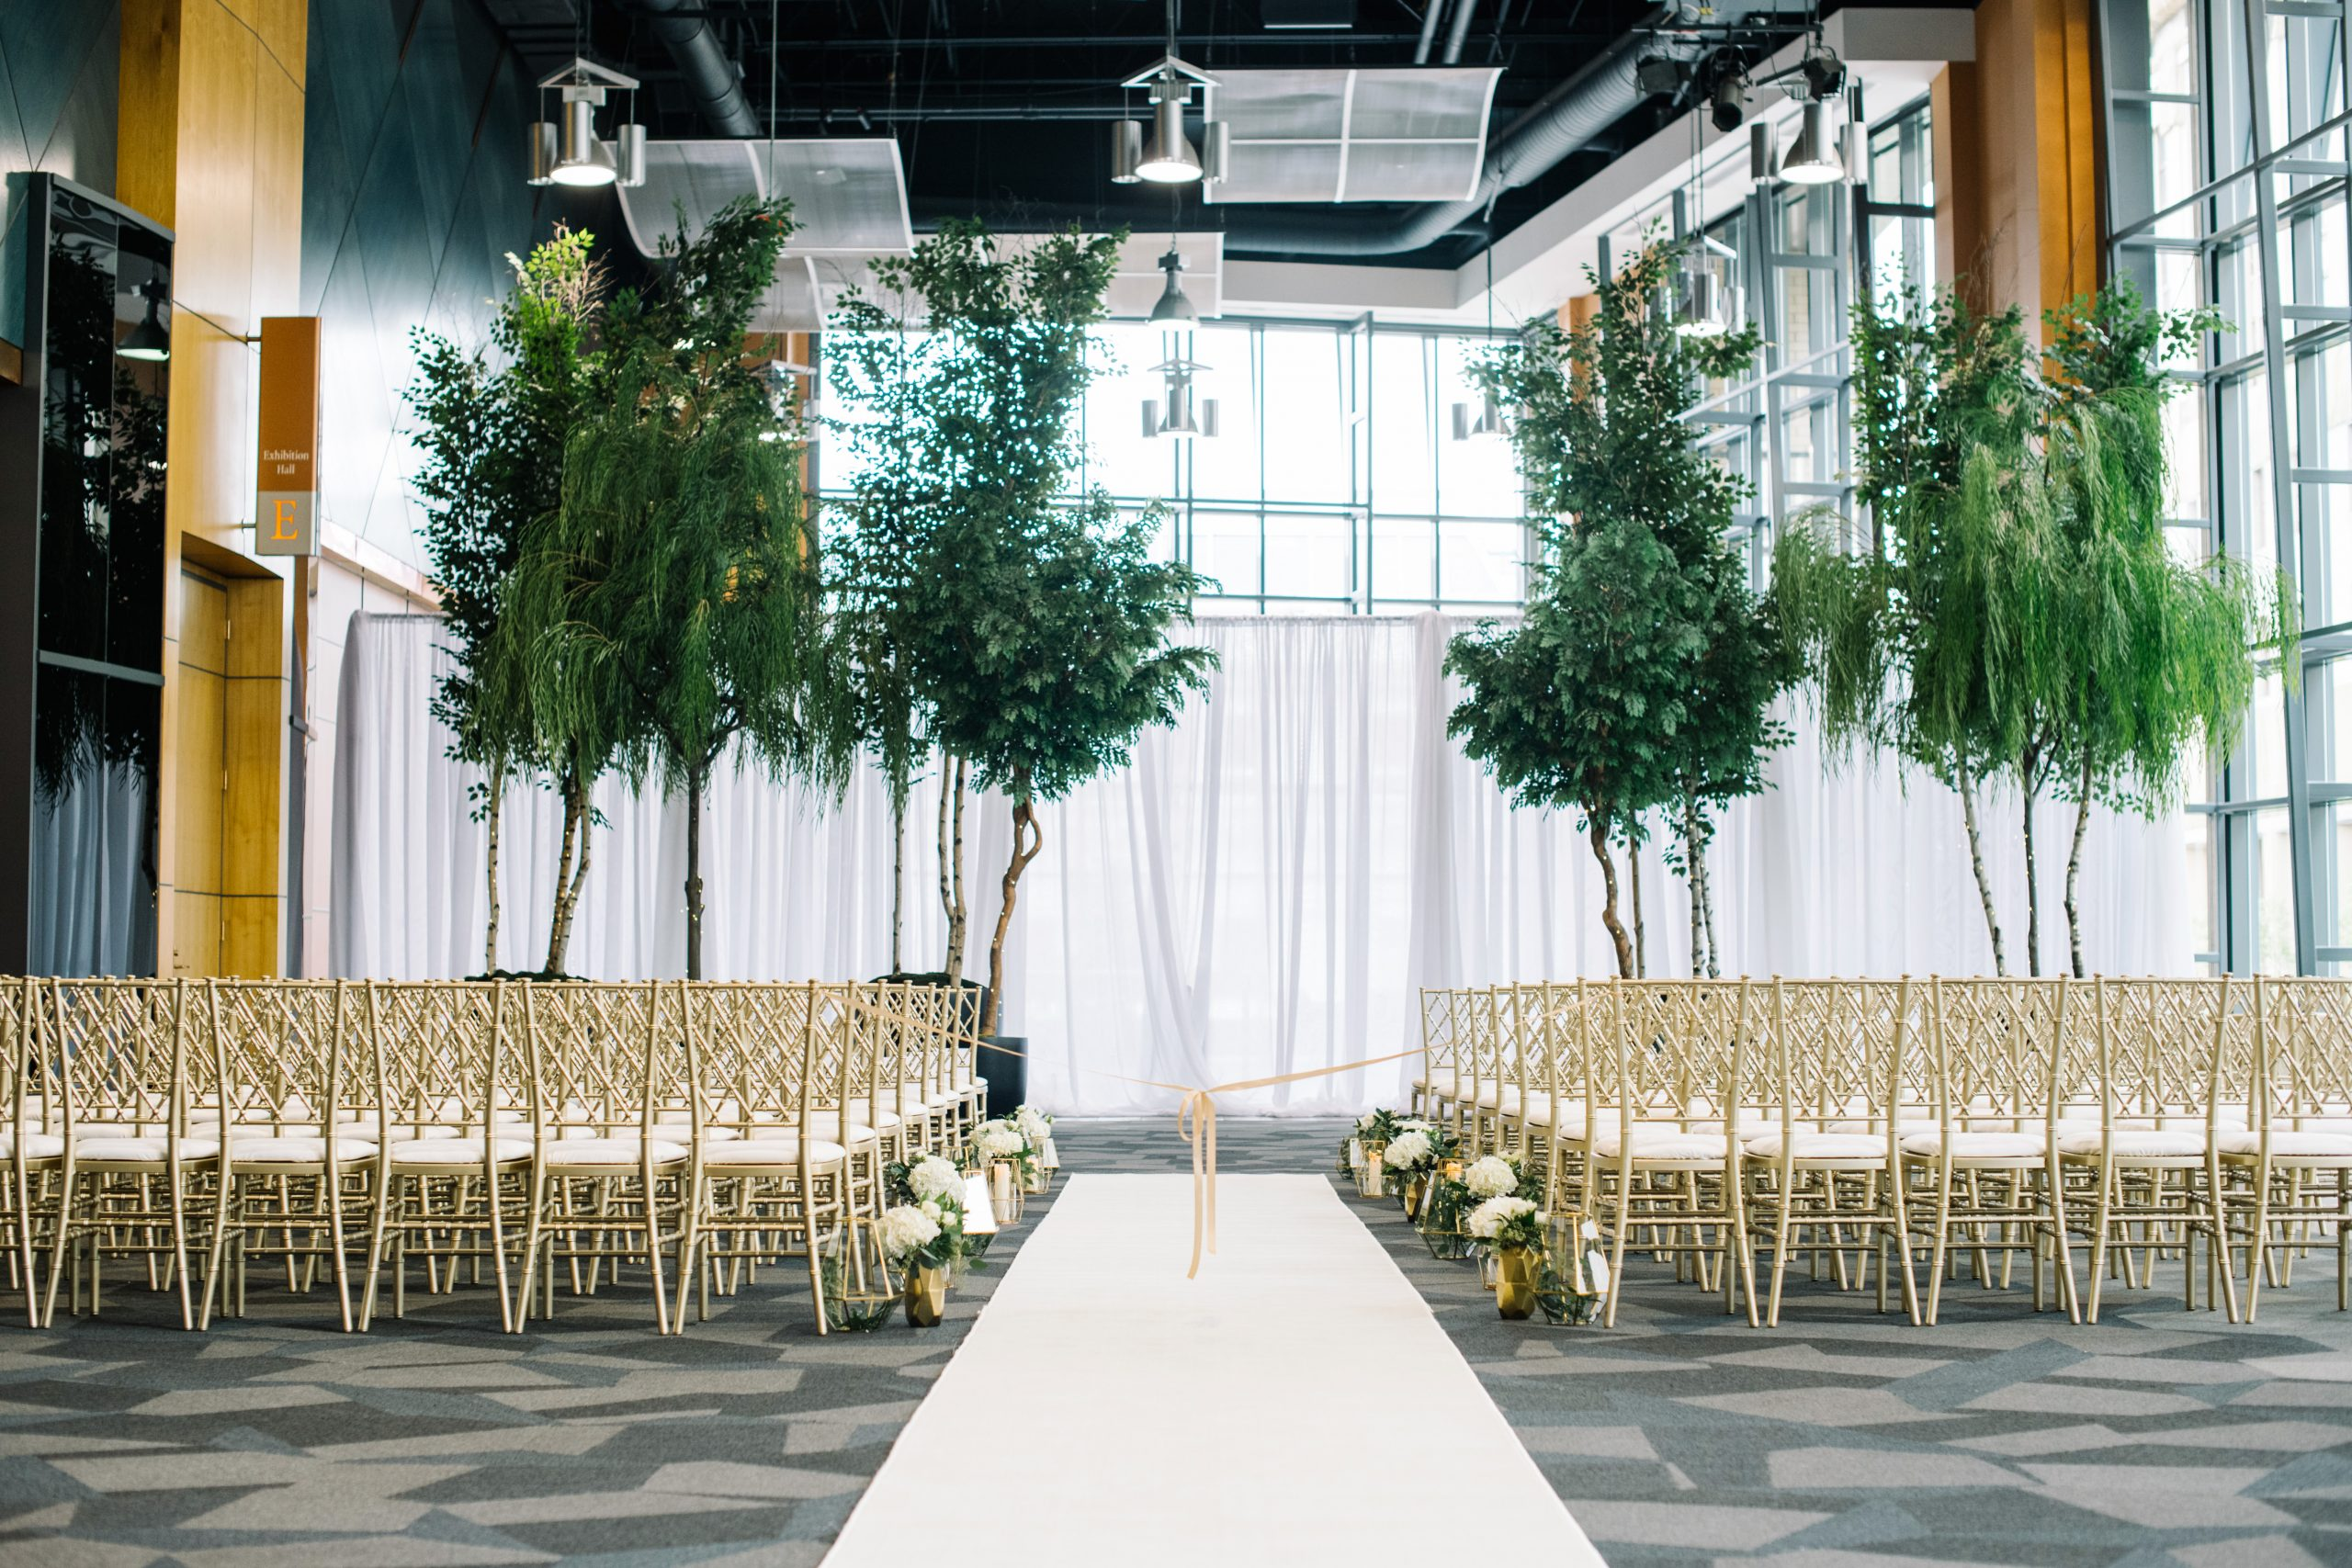 Mixed tree variety, birch, aspen and willow, in fibreglass planters, movable for various event decor at the Calgary Telus Convention Centre